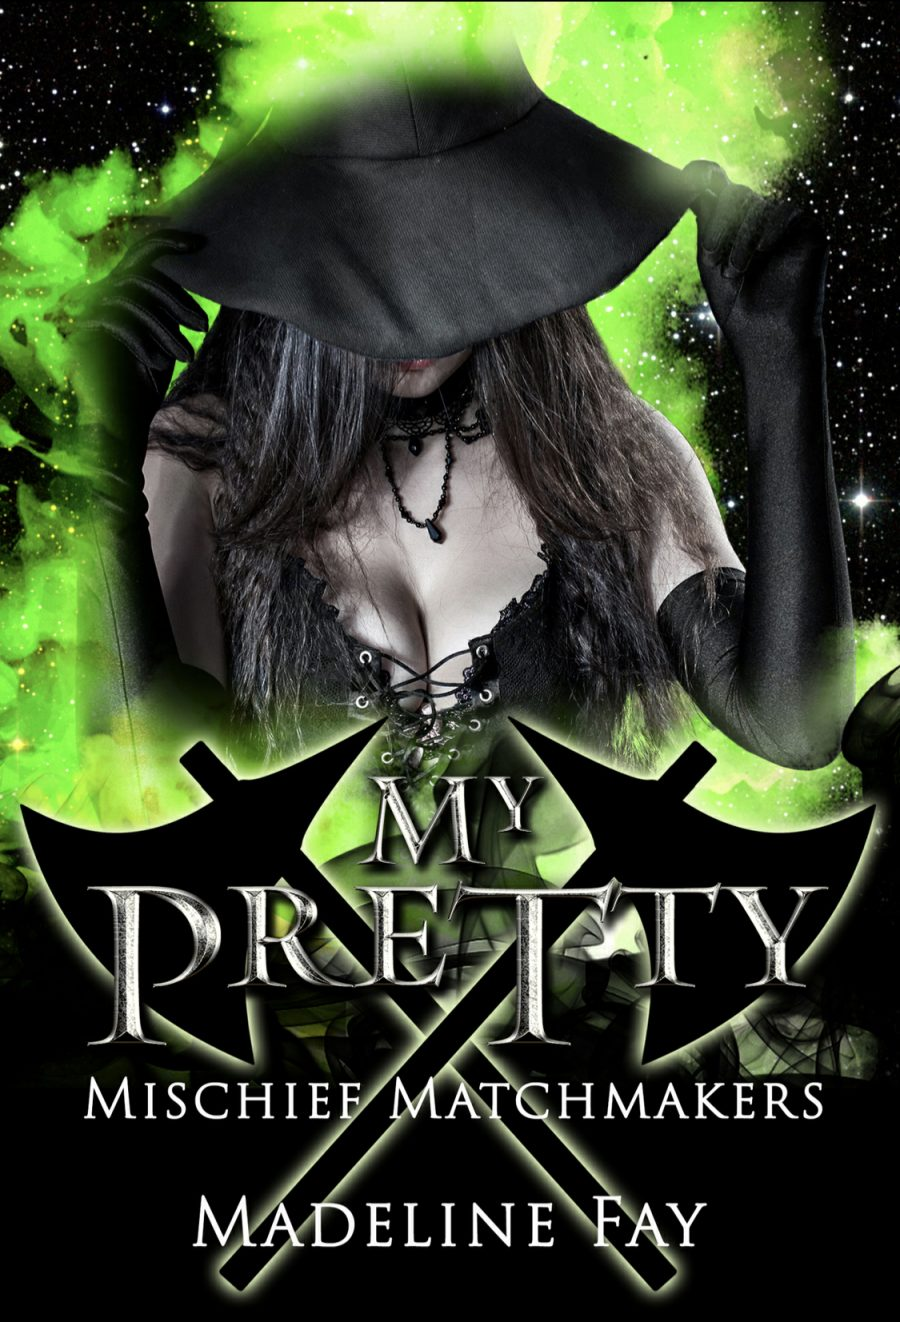 My Pretty (Mischief Matchmakers #1) by Madeline Fay - A Book Review #BookReview #Oz #FastBurn #RH #MischiefMatchmakers #KindleUnlimited #KU